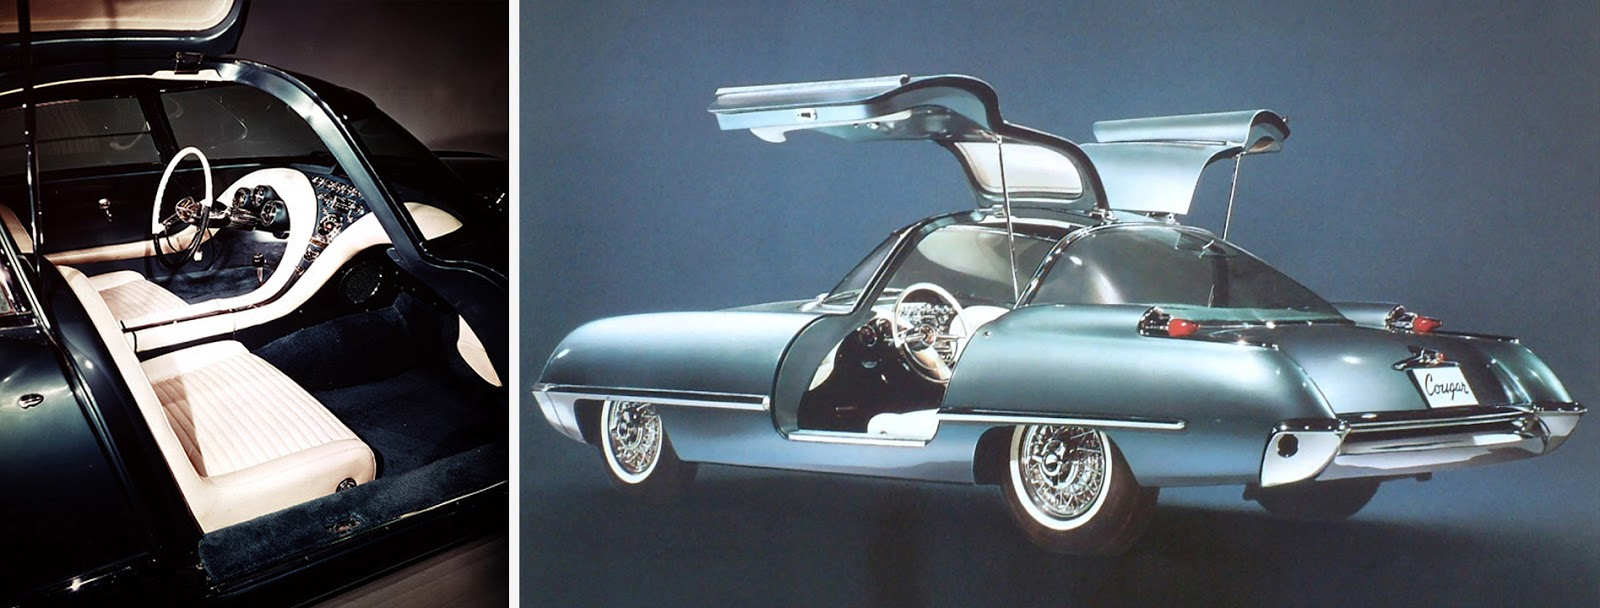 Ford Cougar 406 1962 concept 5